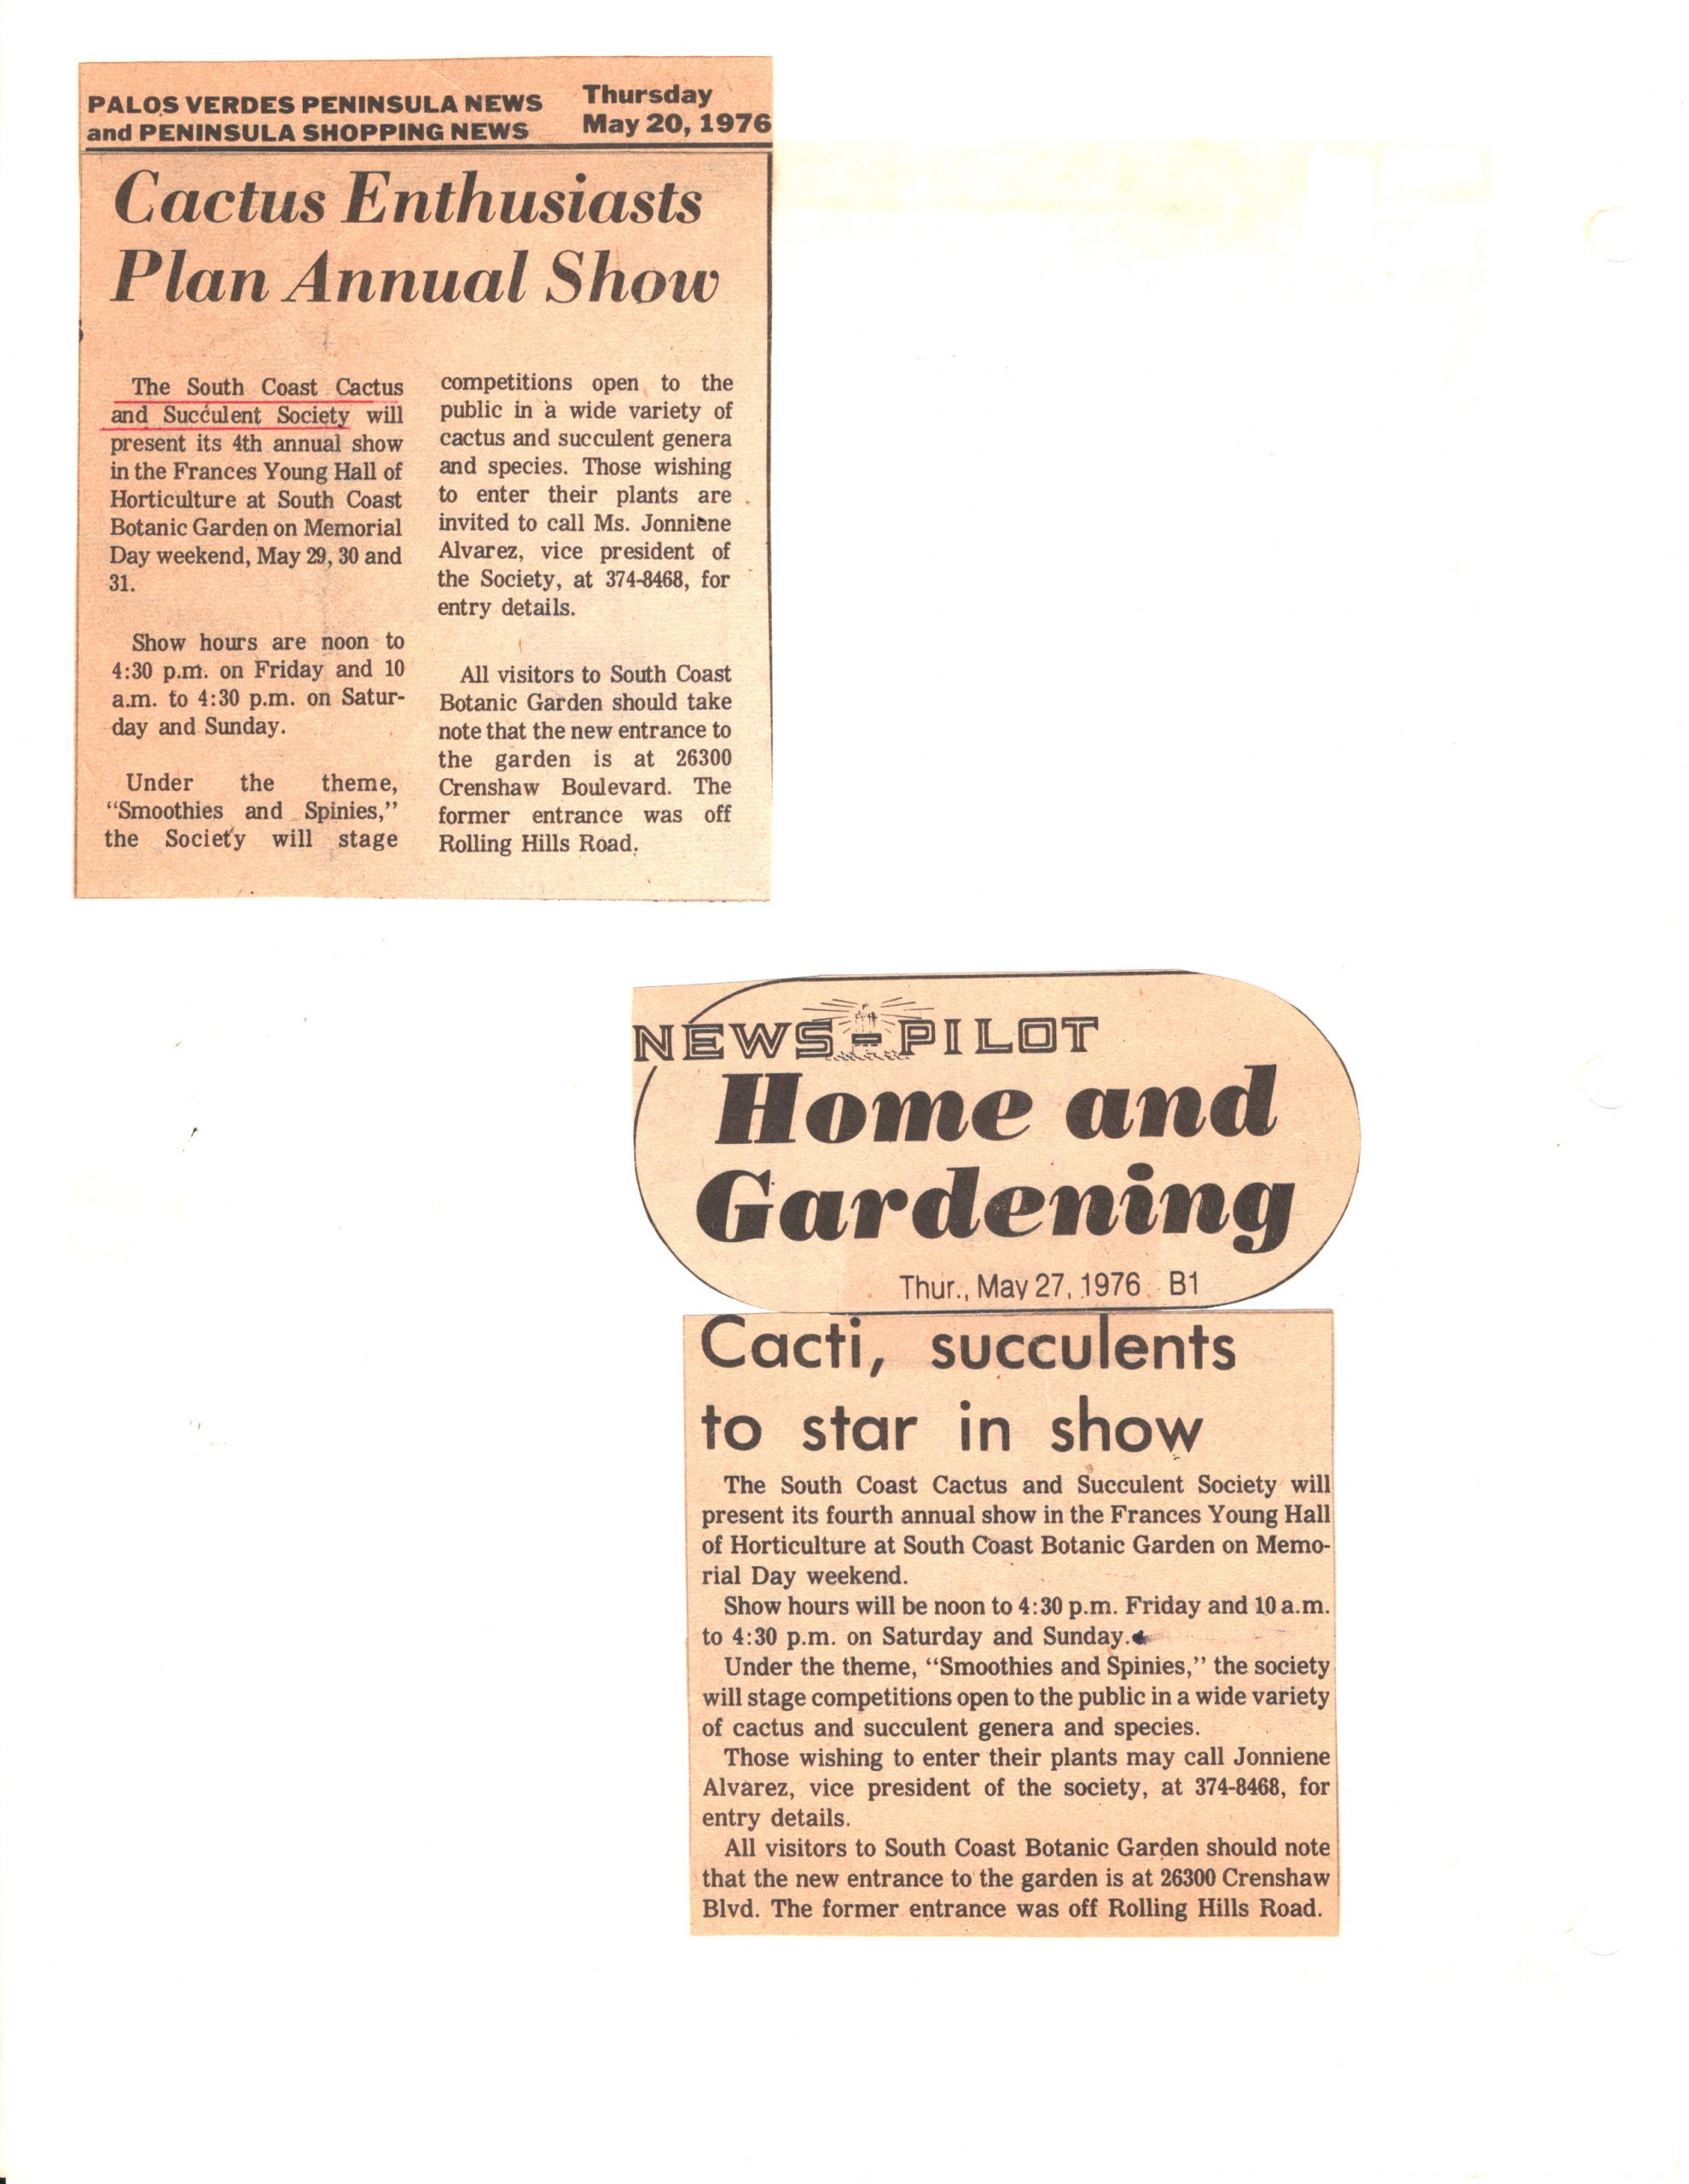 SCCSS-Cuttings-1976-05-20